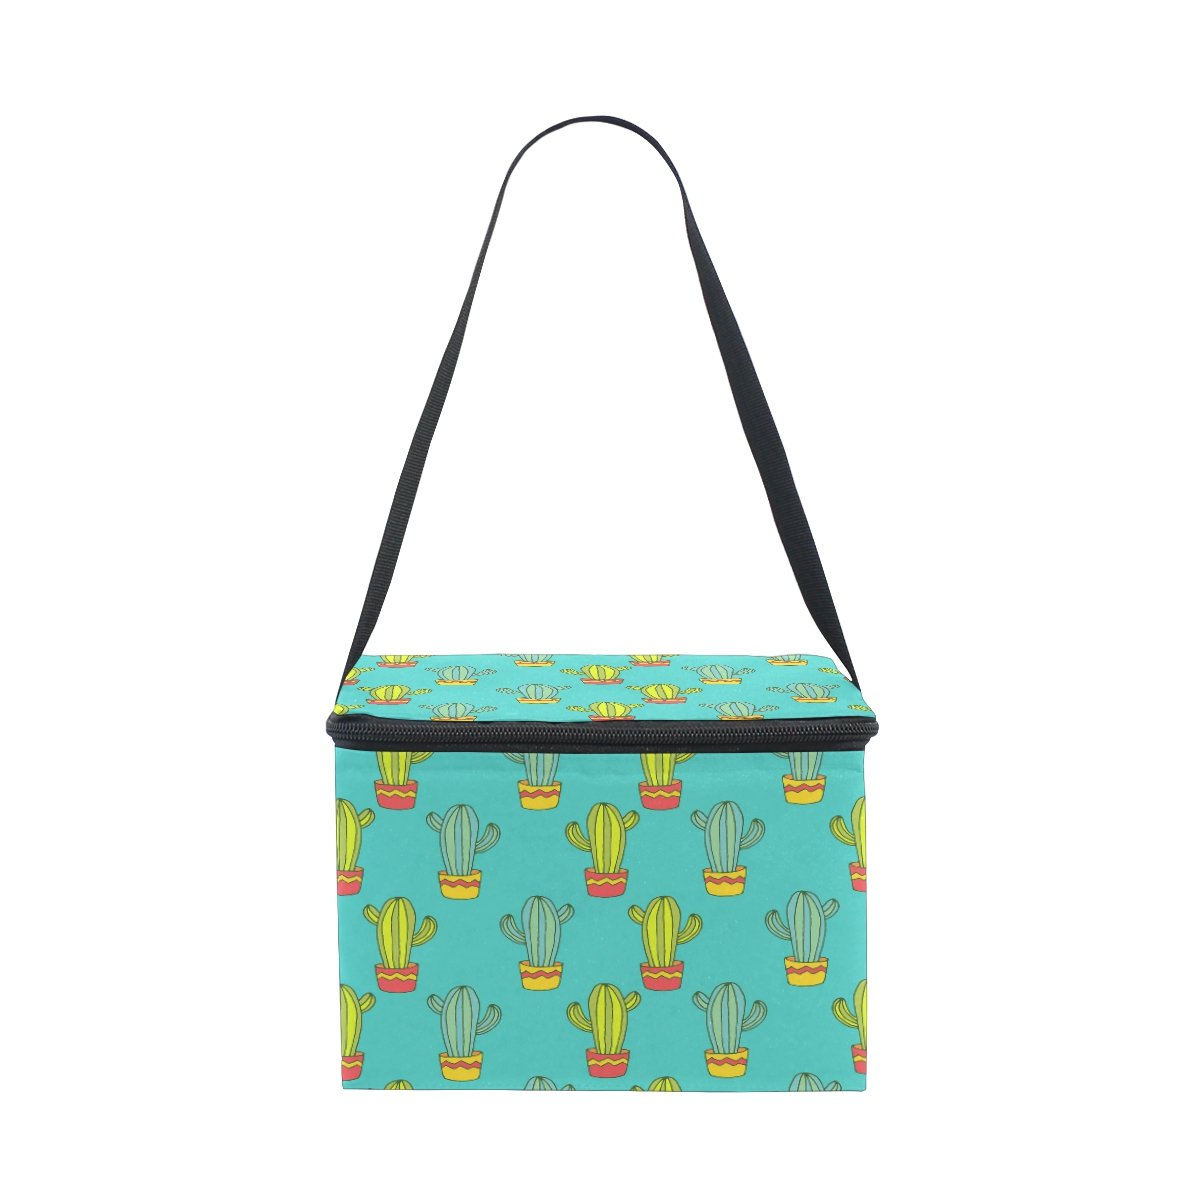 ALAZA Cactus Succulent Insulated Lunch Bag Box Cooler Bag Reusable Tote Bag Outdoor Travel Picnic Bag With Shoulder Strap for Women Men Adults Kids